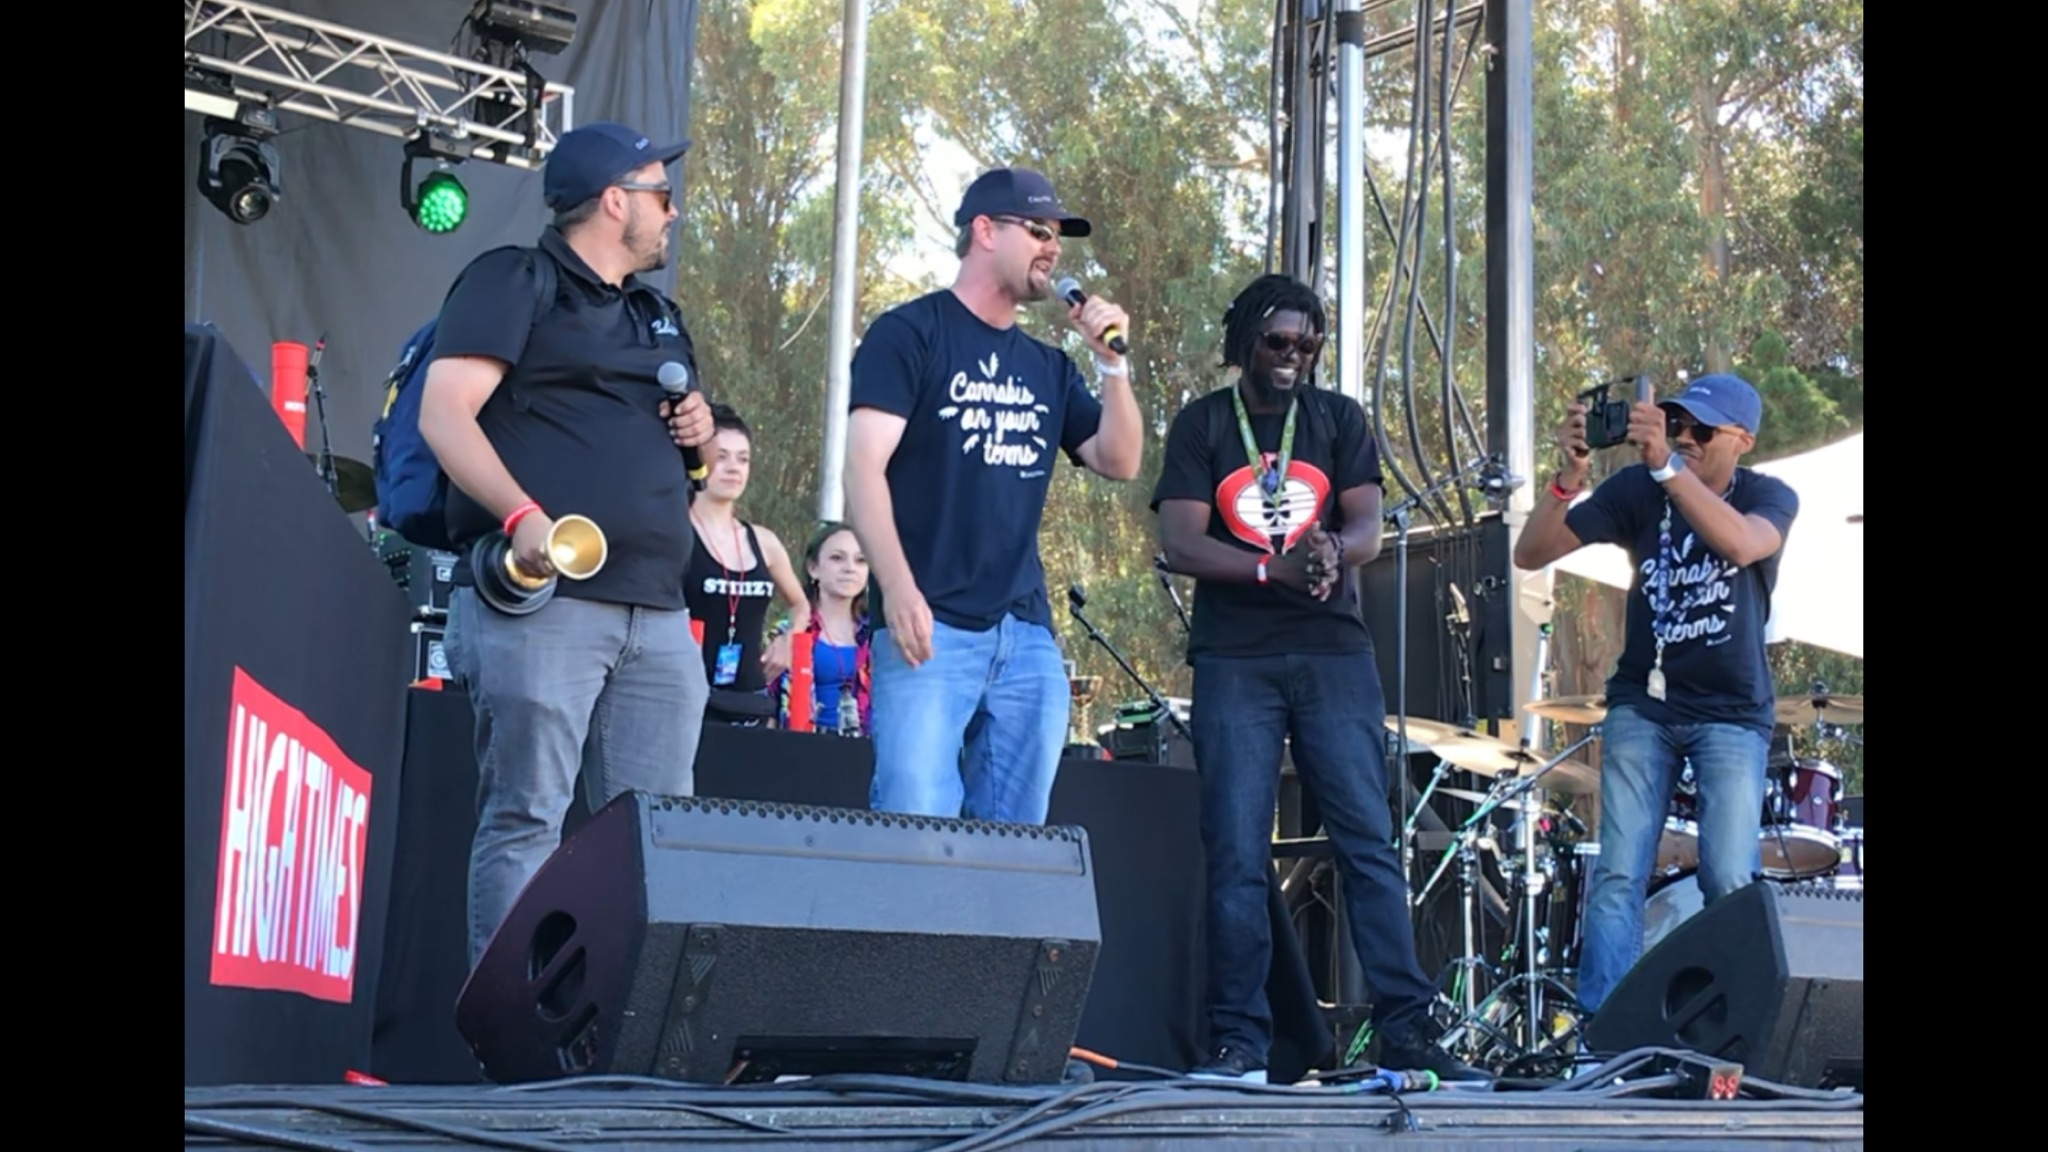 Caliva's cultivation team accepts the award for Best Hybrid Flower at the 2019 High Times Cannabis Cup.